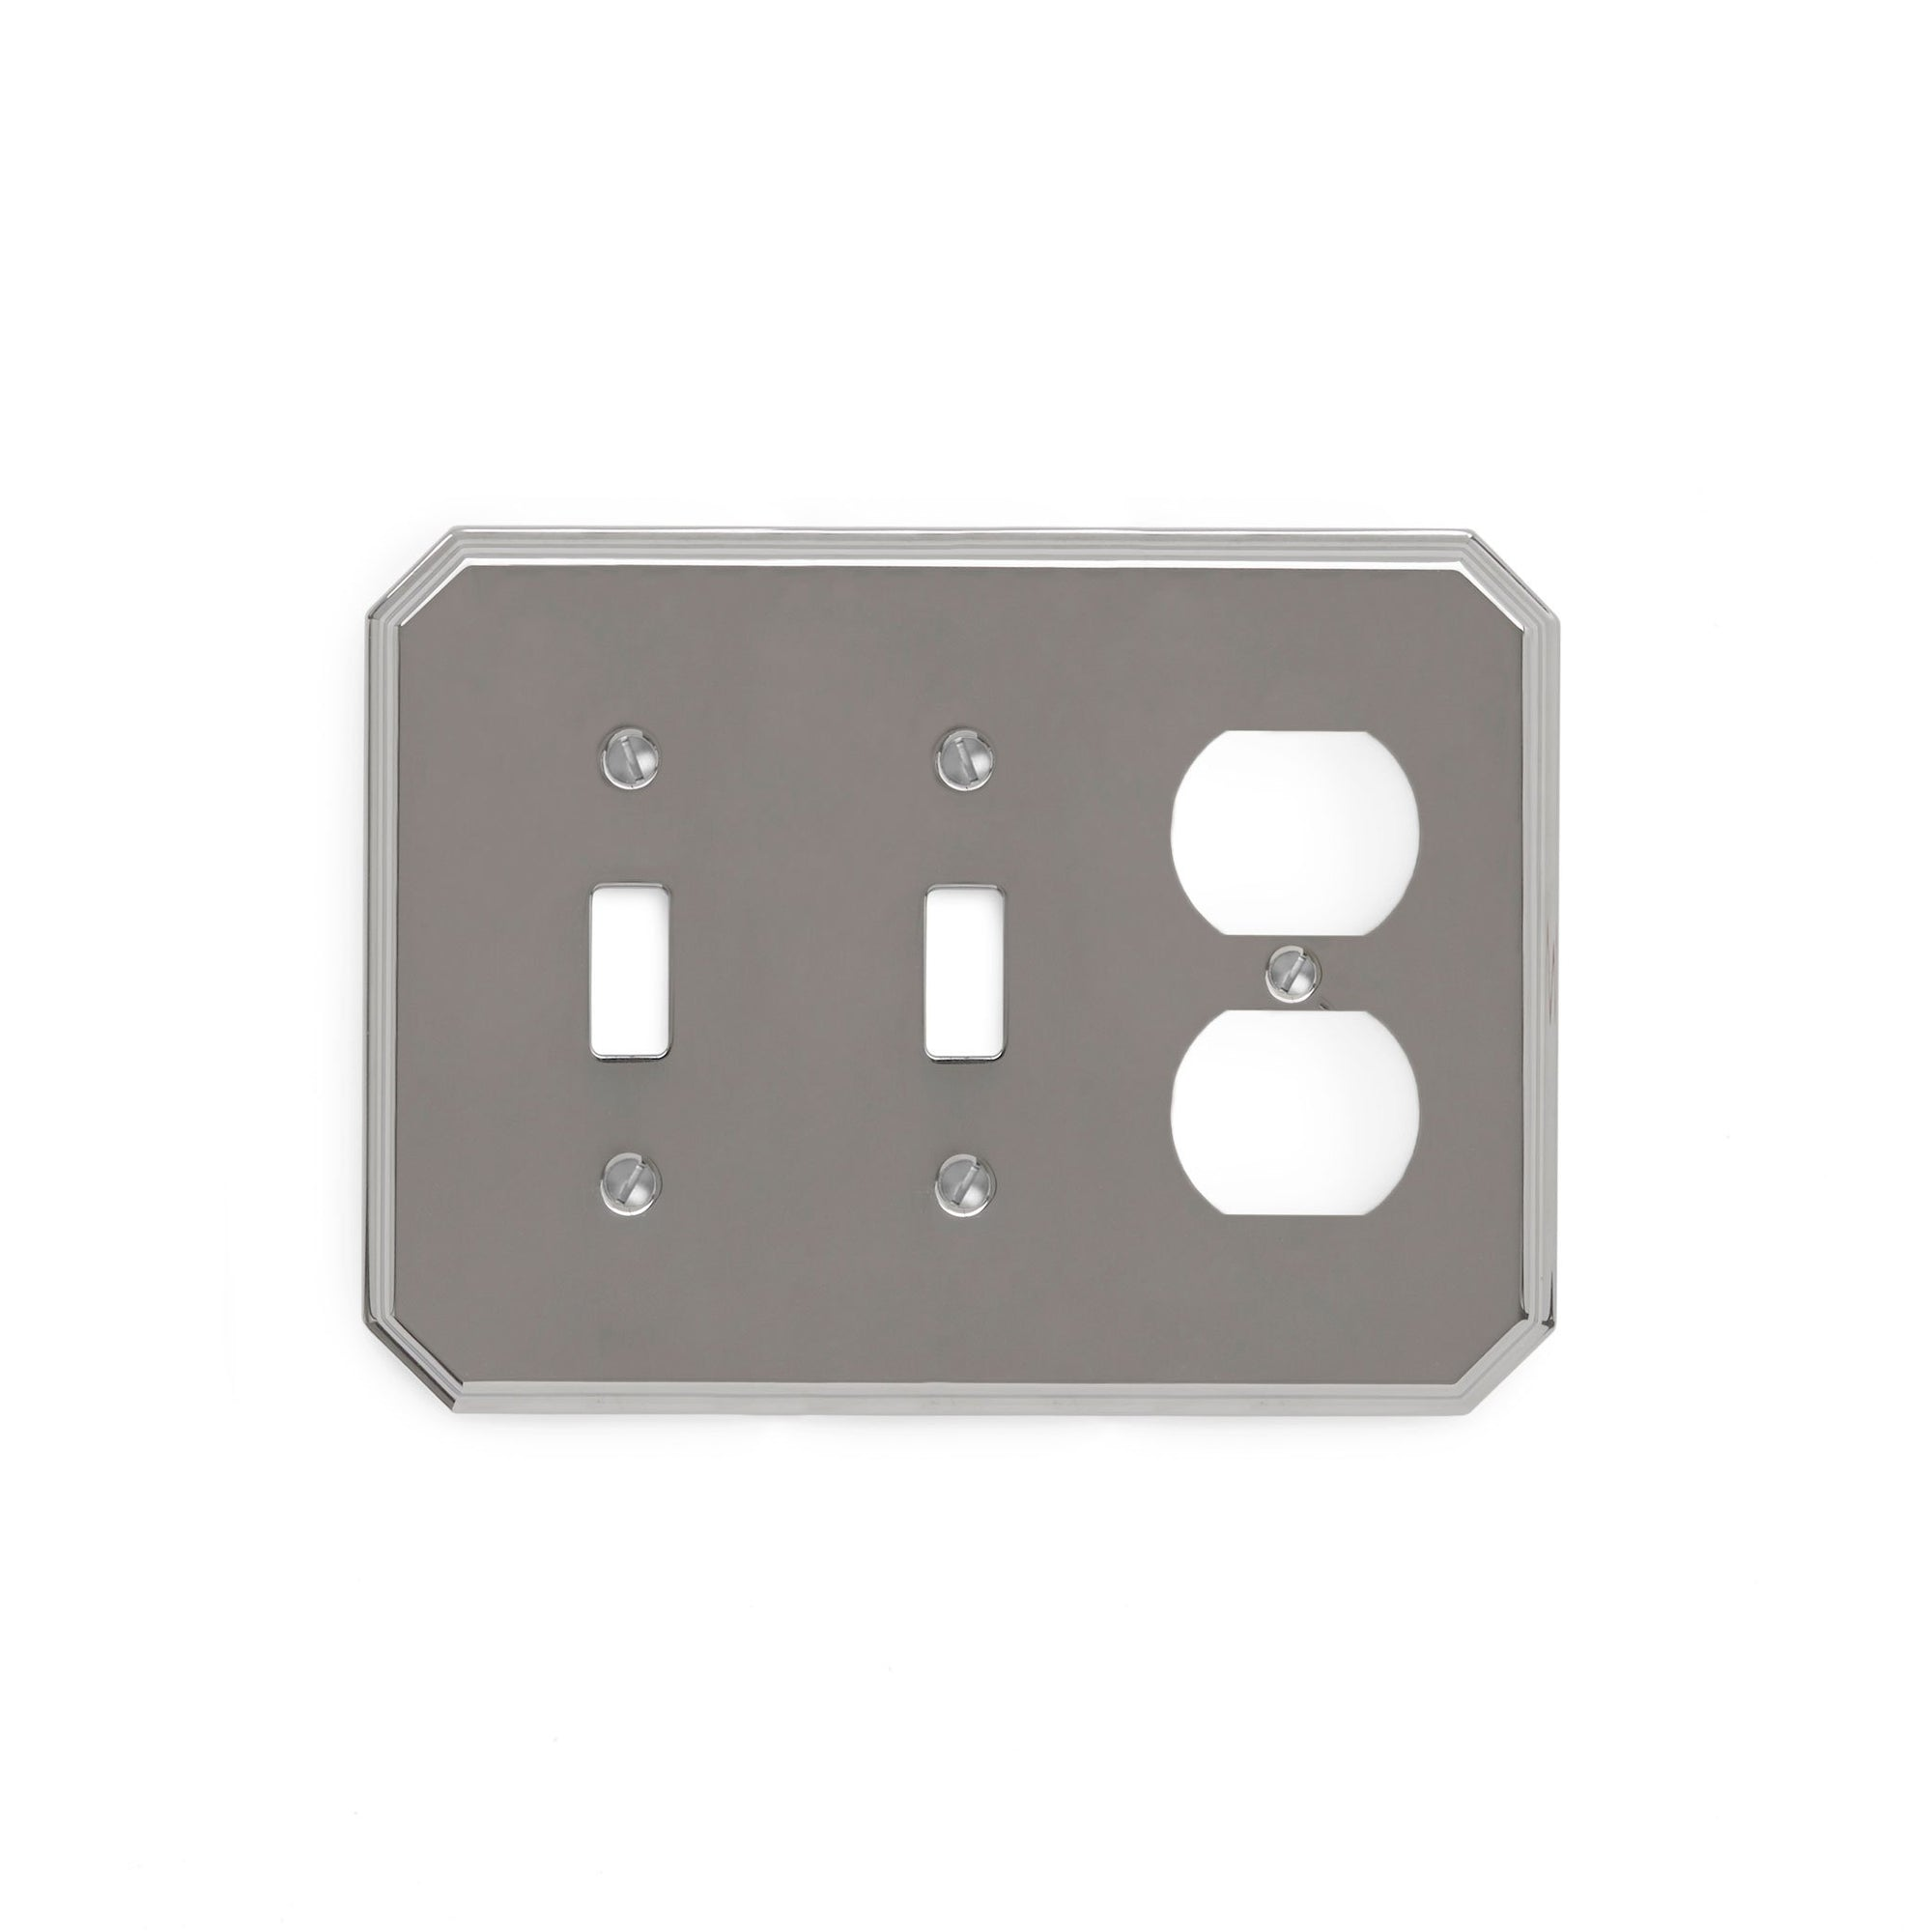 0035T-SWT-SWT-PLG-CP Sherle Wagner International Harrison Triple Double Switch & Single Duplex Plug Plate in Polished Chrome metal finish